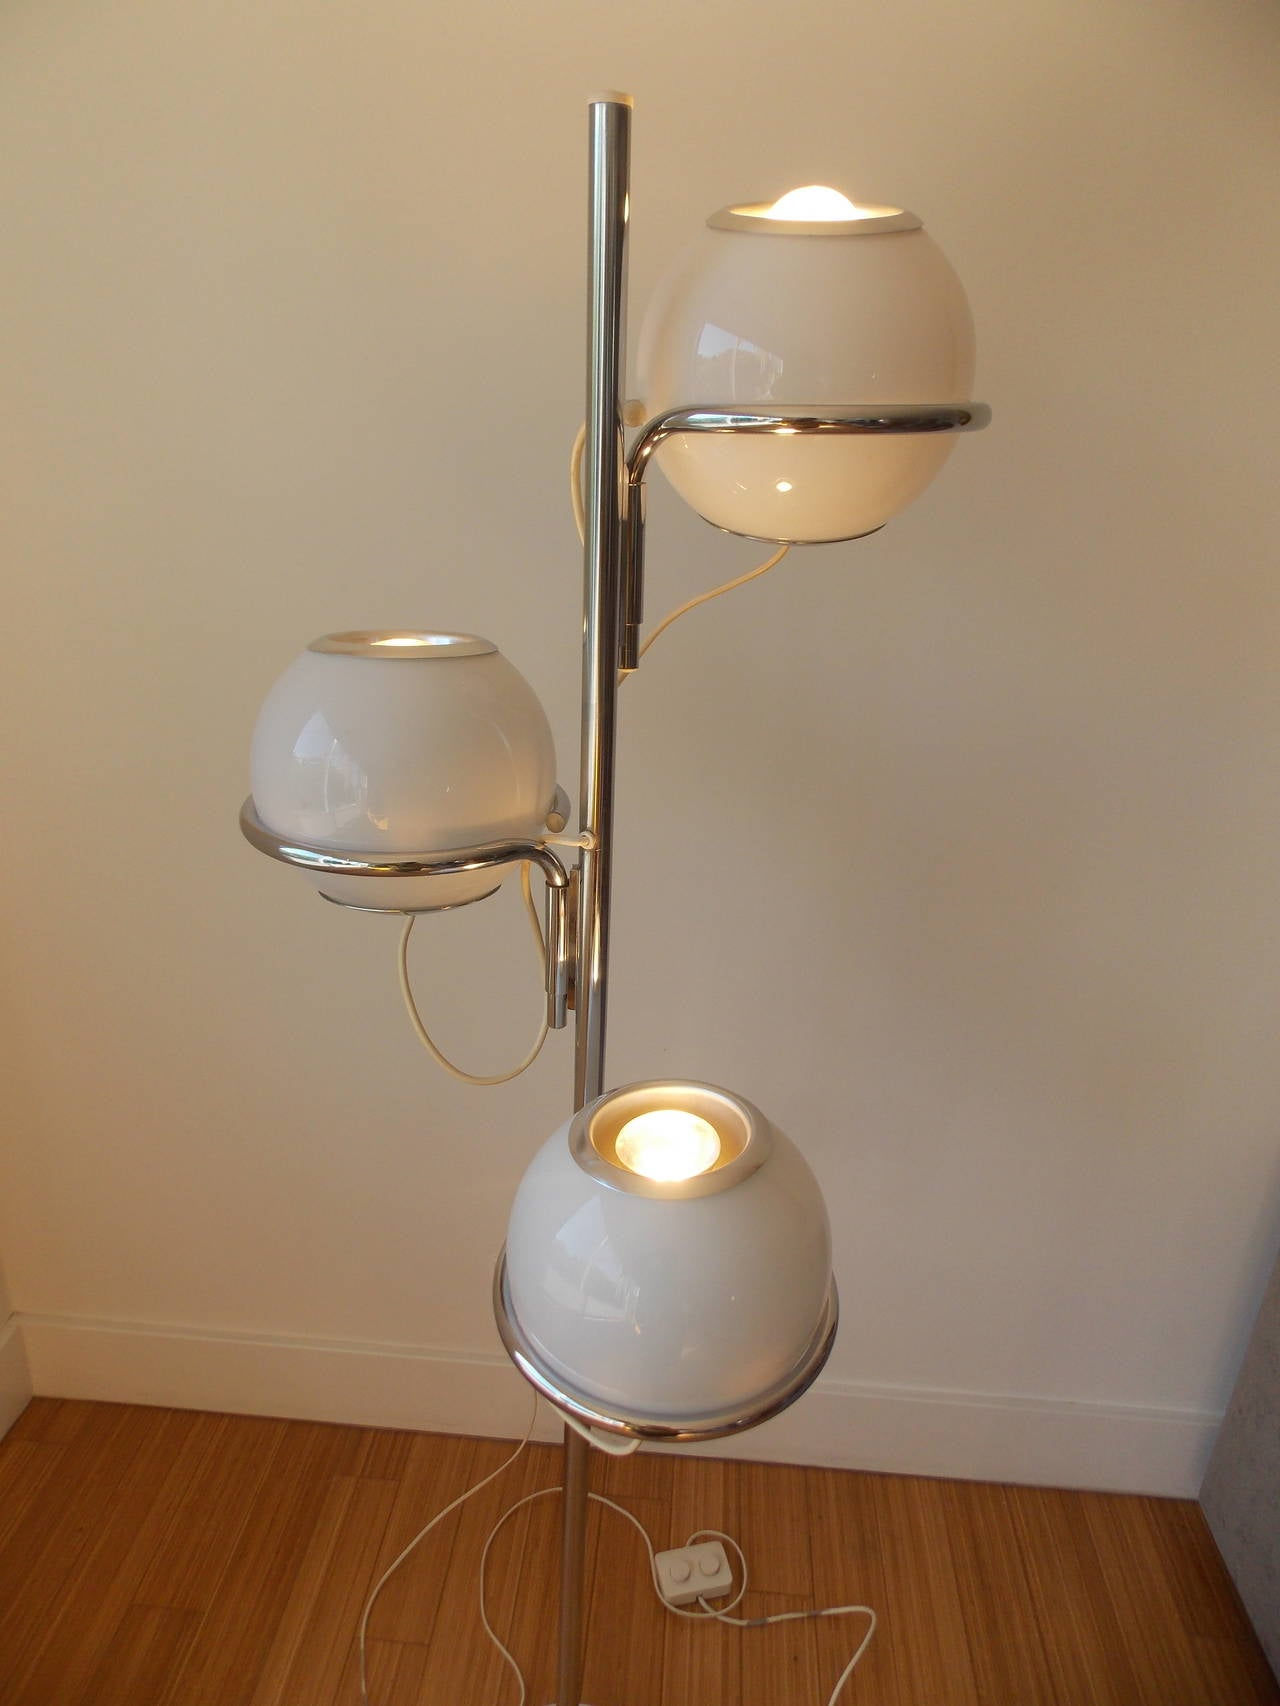 Vintage Italian Design Floor Lamp By Reggiani 1960s At